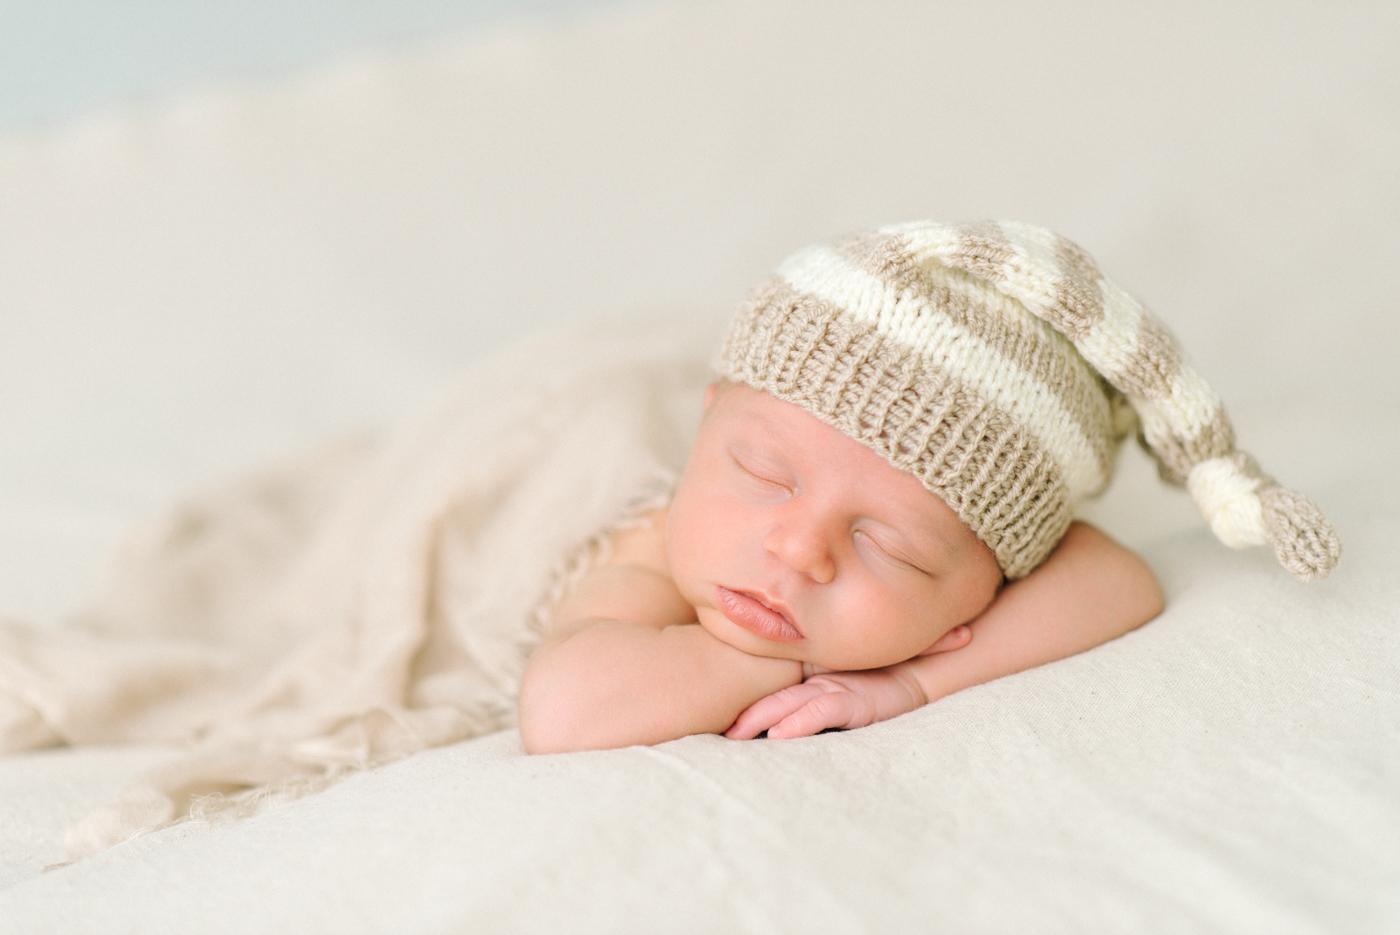 Newborn-Photographer-Portland-Oregon-Portrait-Sleeping-Baby-striped-cream-knit-hat-Natural-light-Shelley-Marie-Photography-3